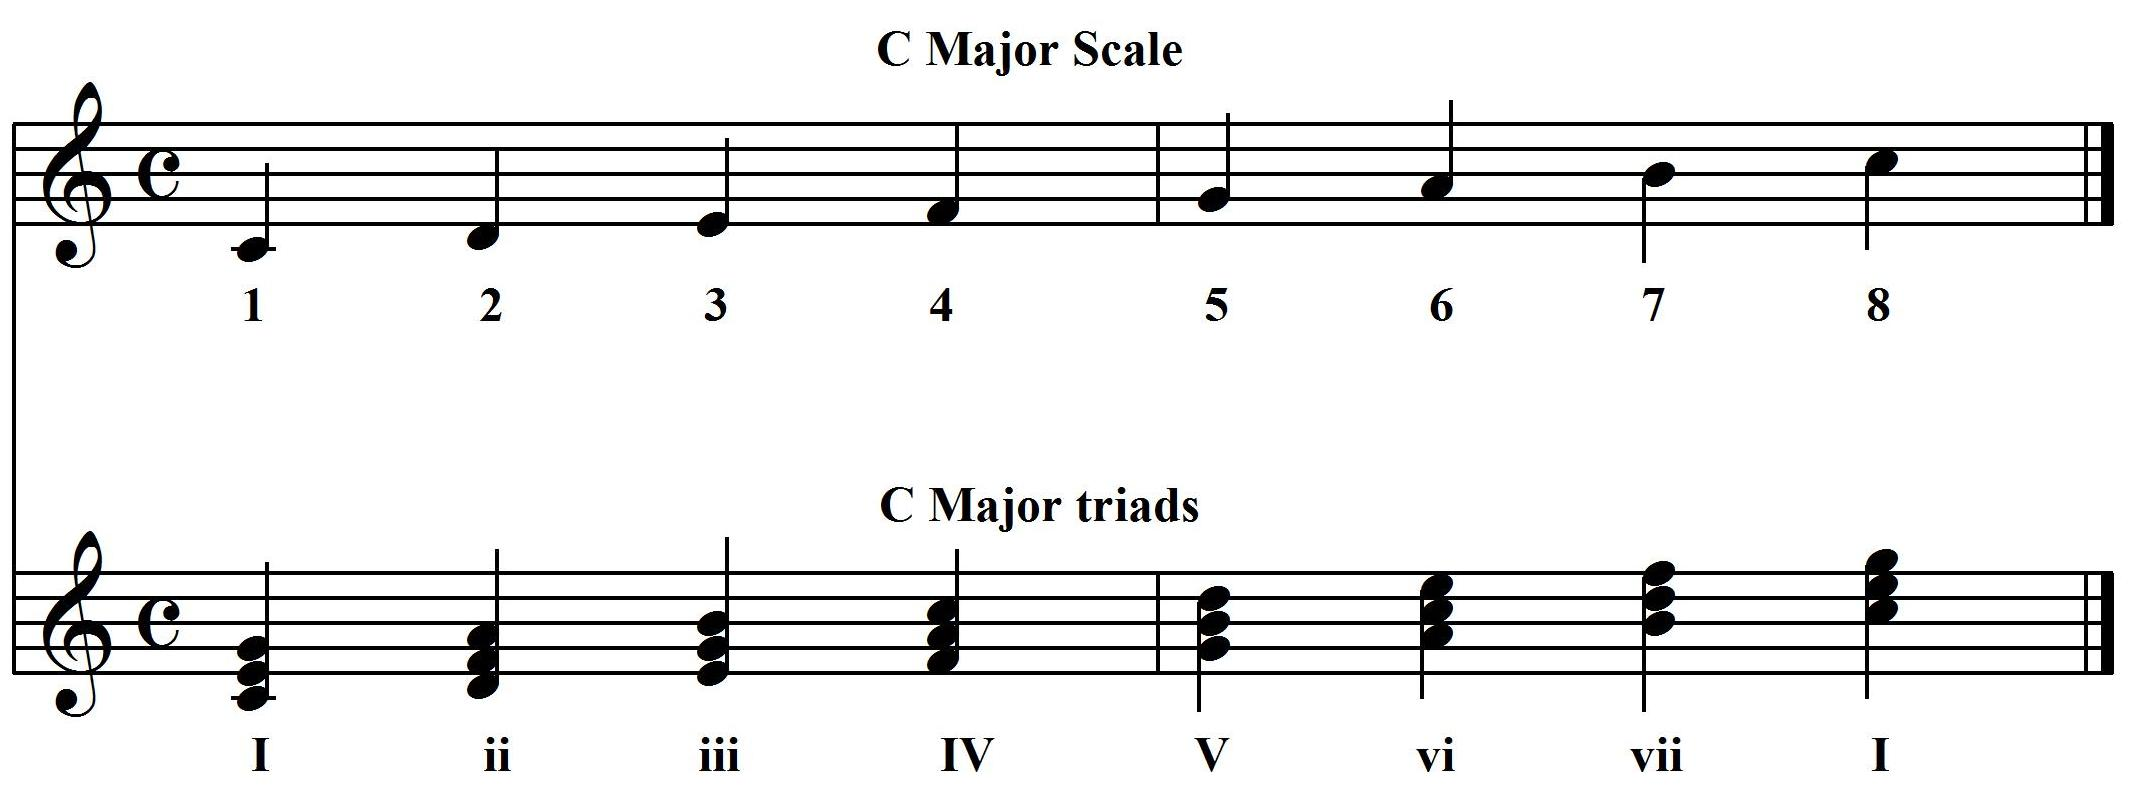 The church pianist chord substitutions scale and triads buycottarizona Image collections